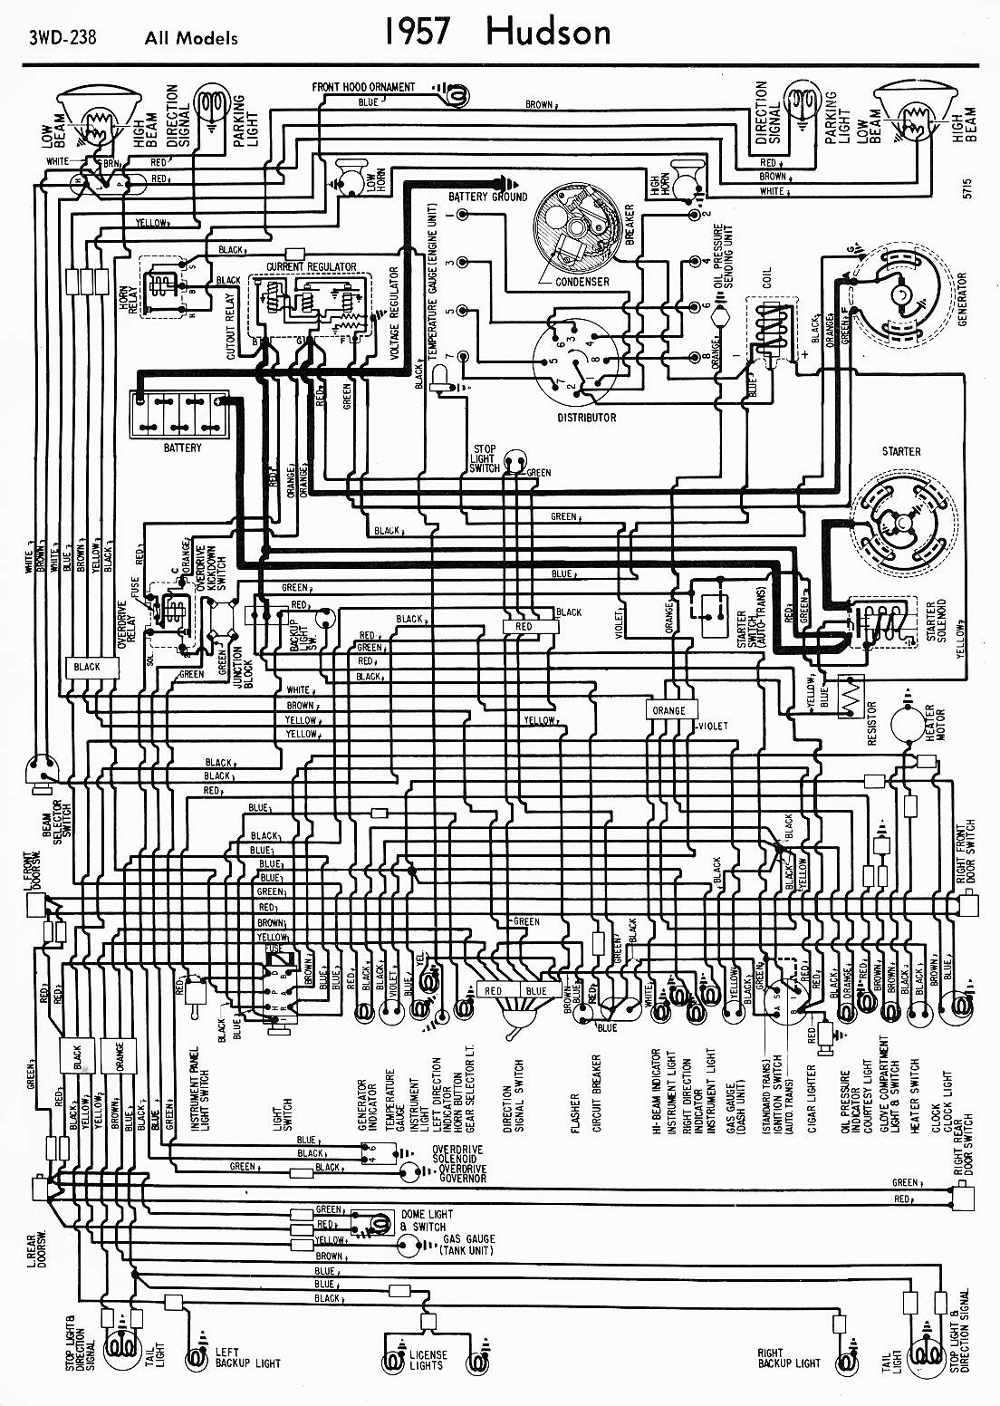 Hudson Car Manuals Wiring Diagrams Pdf Fault Codes Ford Download